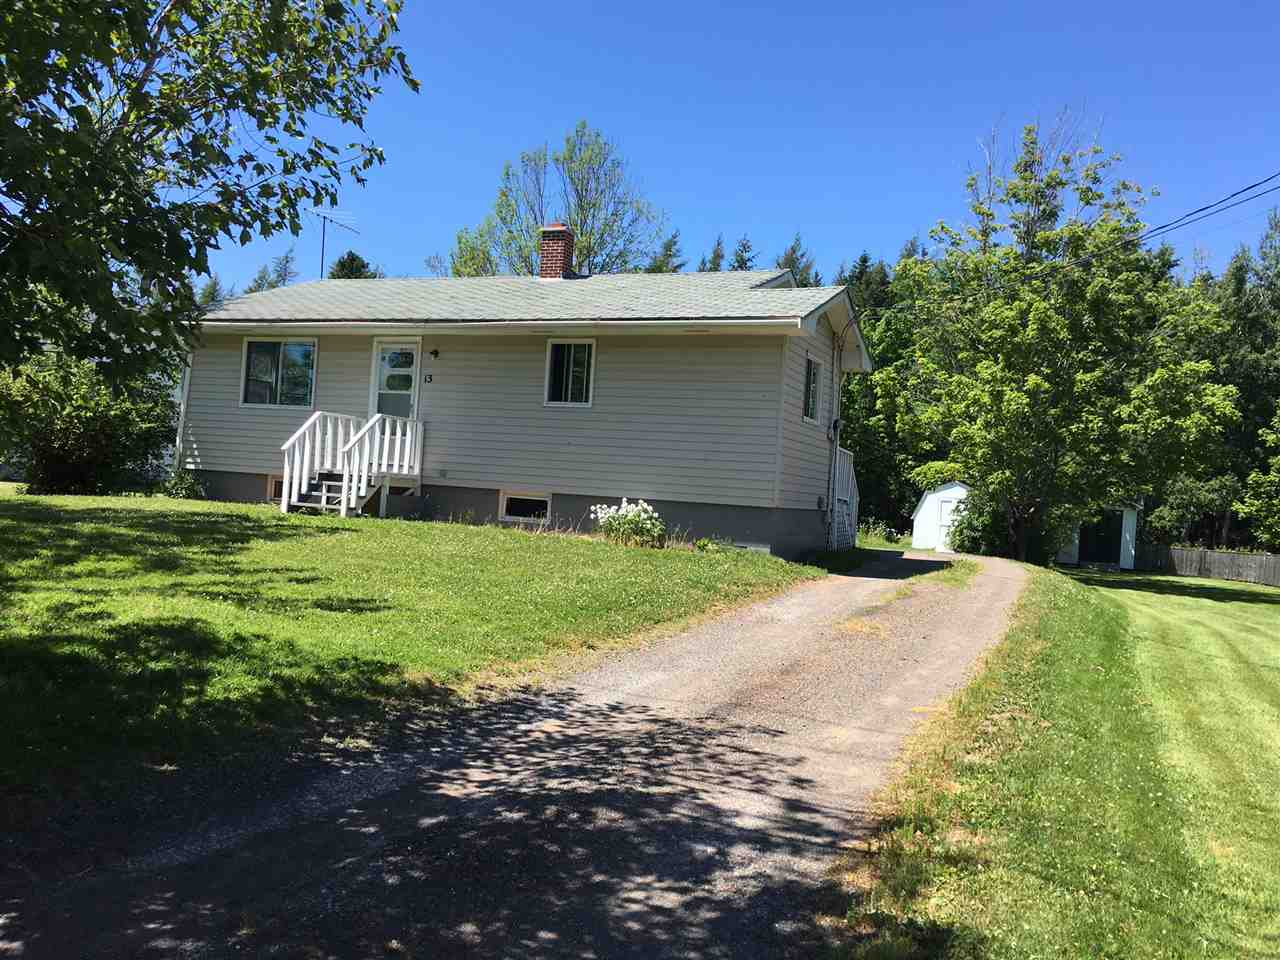 Main Photo: 13 Lake Road in Tatamagouche: 103-Malagash, Wentworth Residential for sale (Northern Region)  : MLS®# 201818381